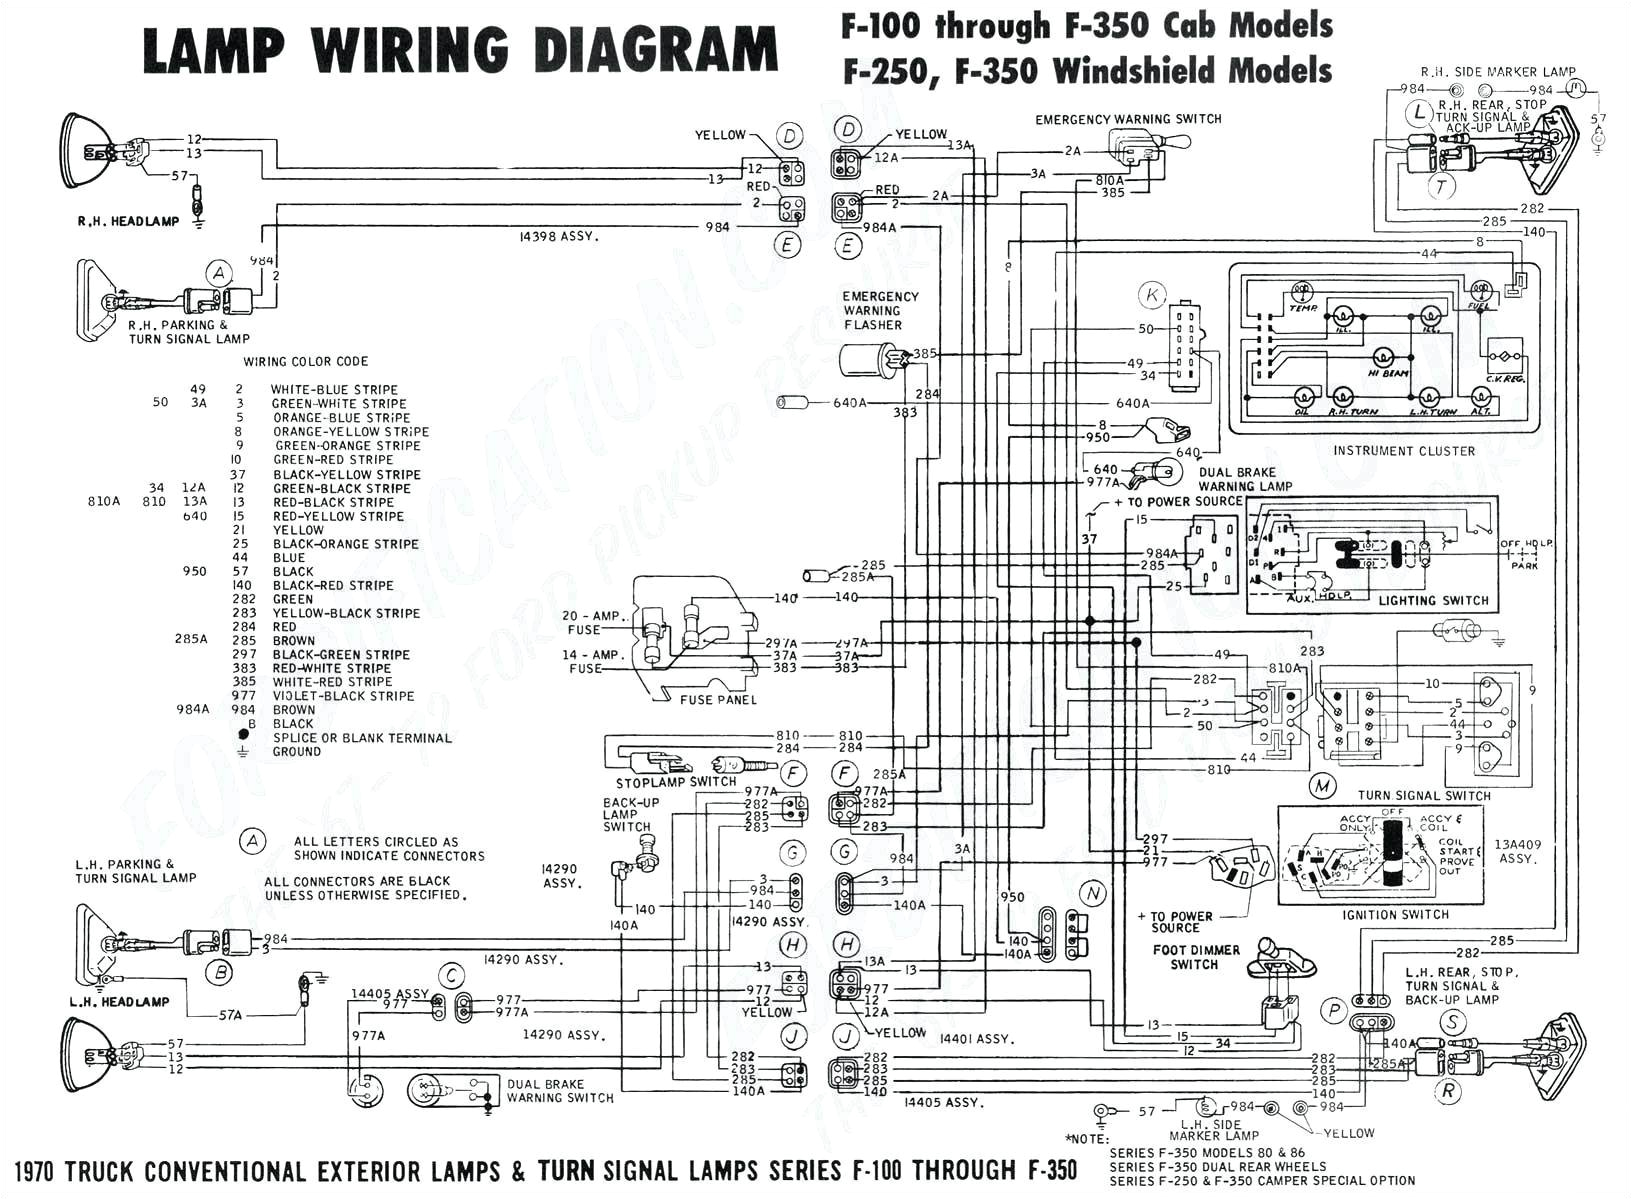 1999 durango wiring schematic wiring diagram blog 1999 dakota headlight wiring diagram wiring diagram schematic 1999